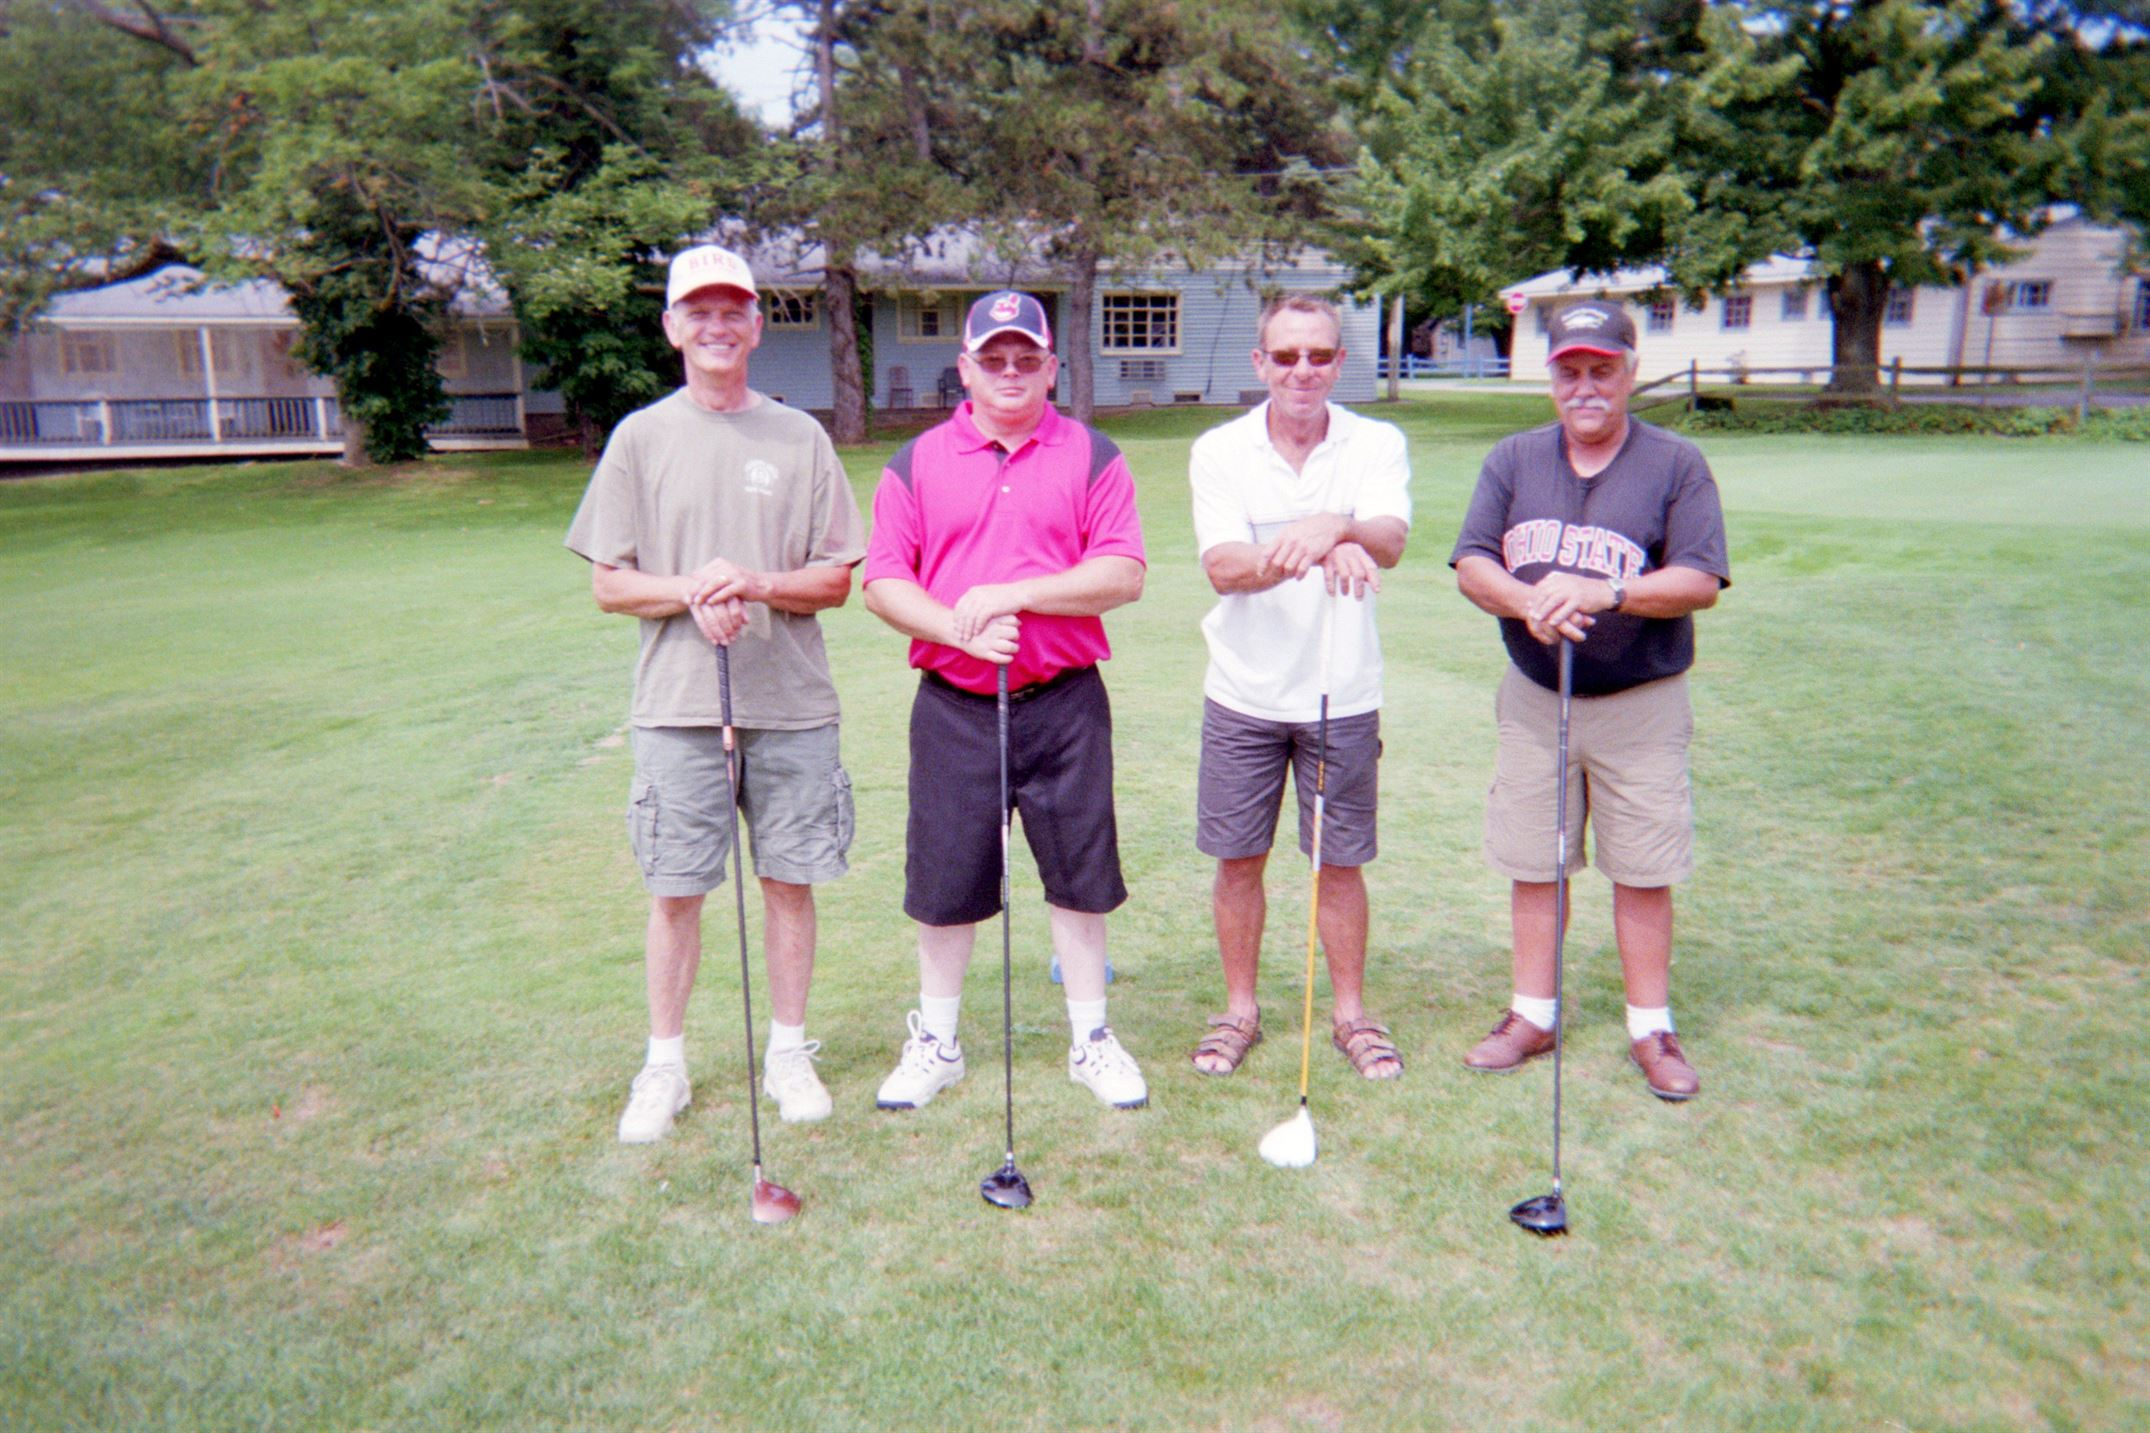 Don Burlingame, Dave Cross, Steve Dragon, Brent Williamson